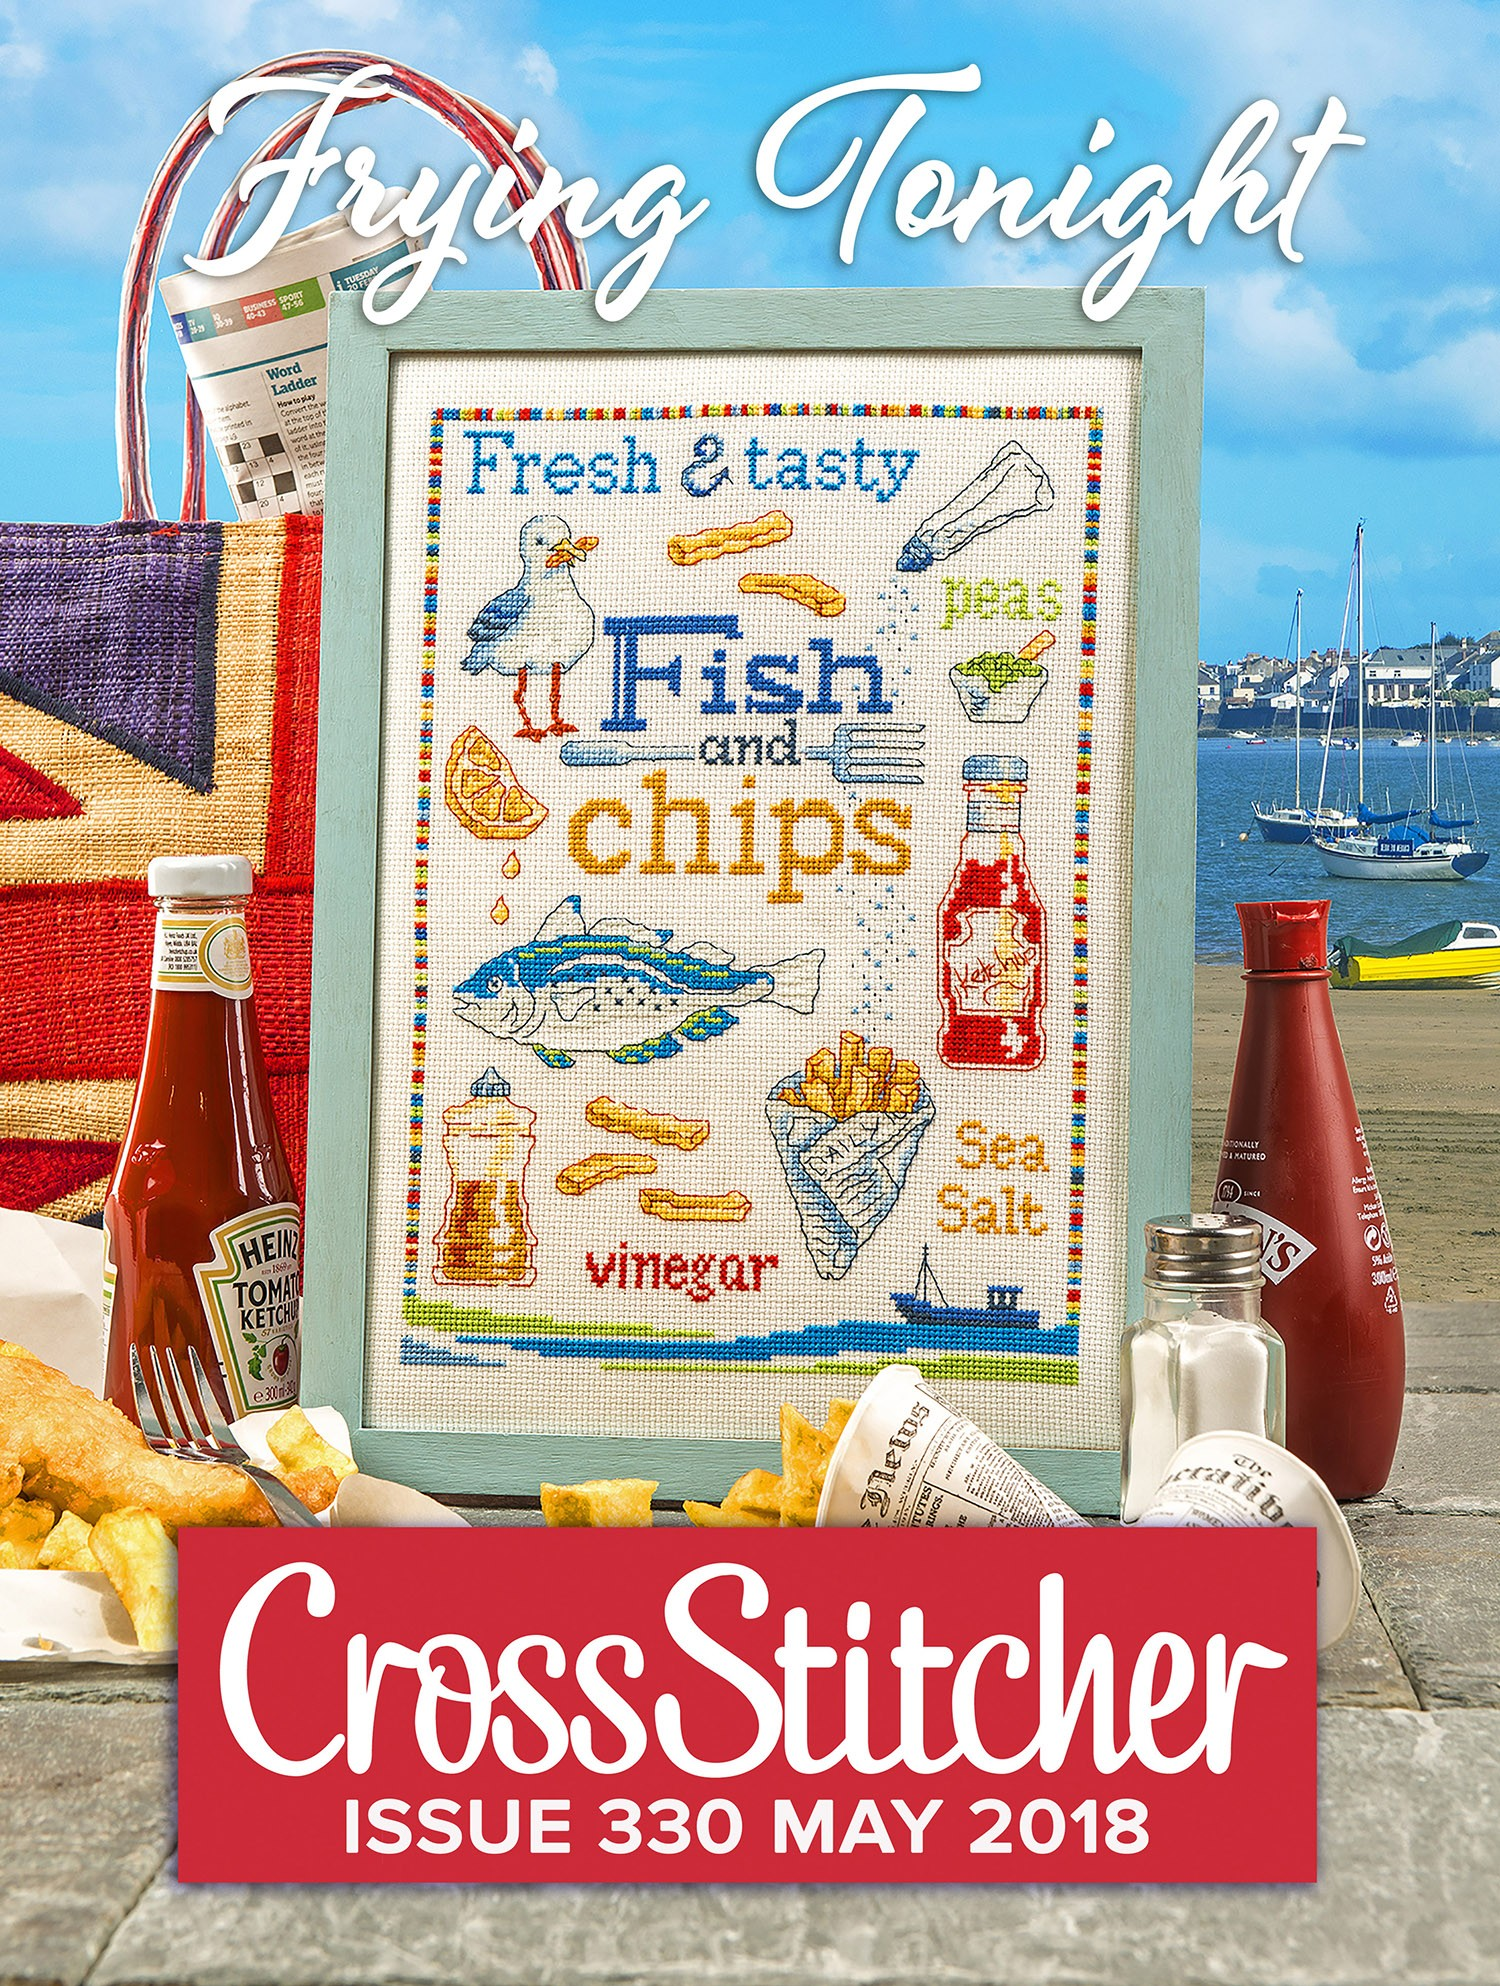 Cross Stitcher Project Pack - Frying Tonight Issue 330